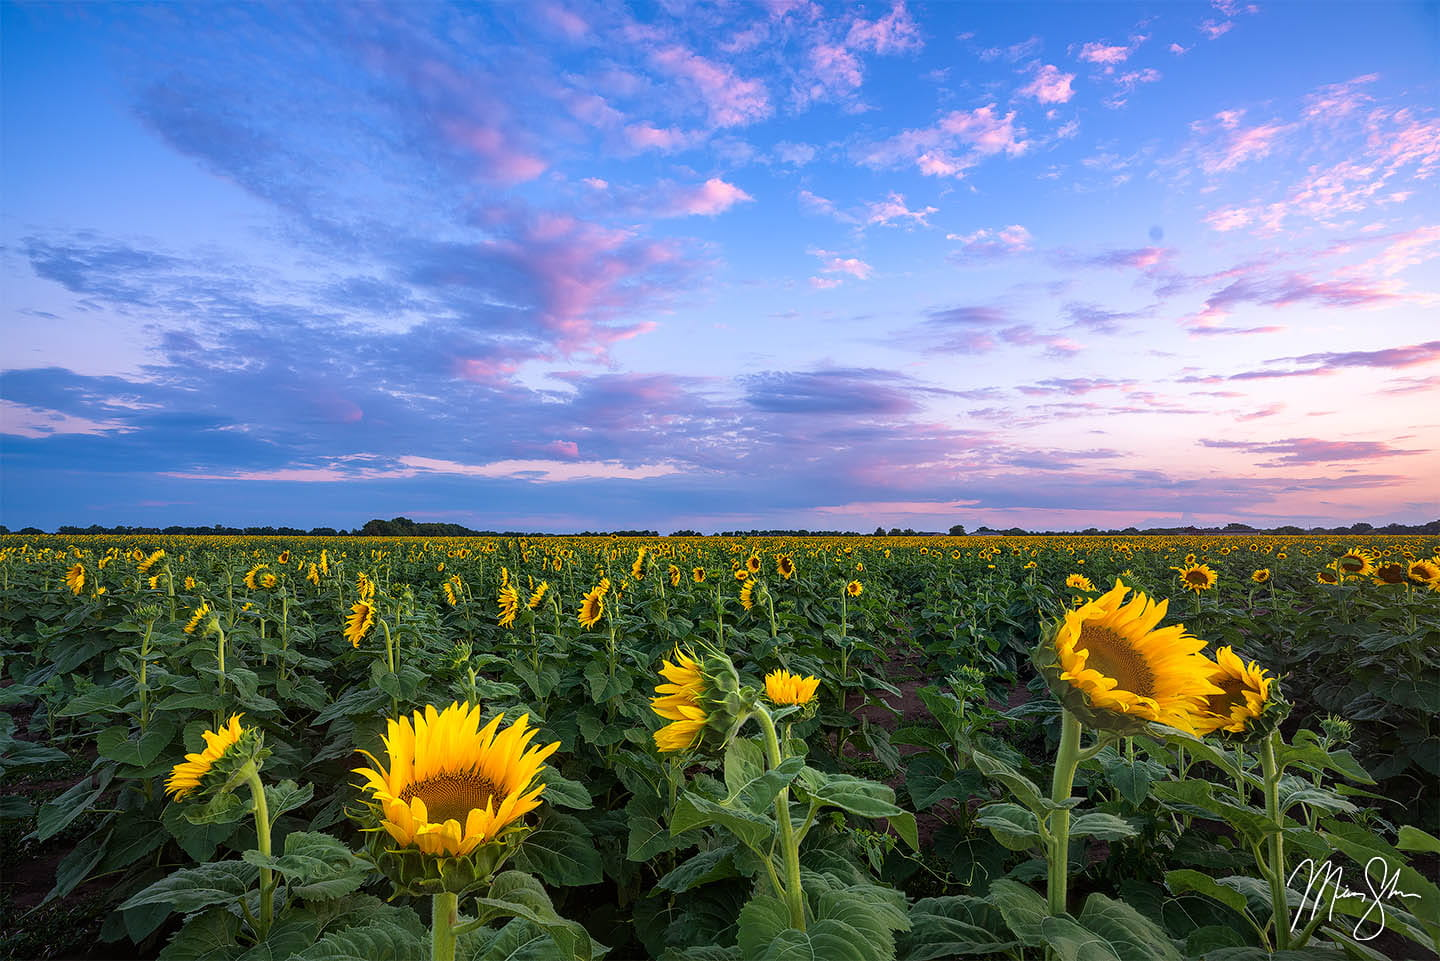 Kansas photography: Sunflowers at Grinter Farms